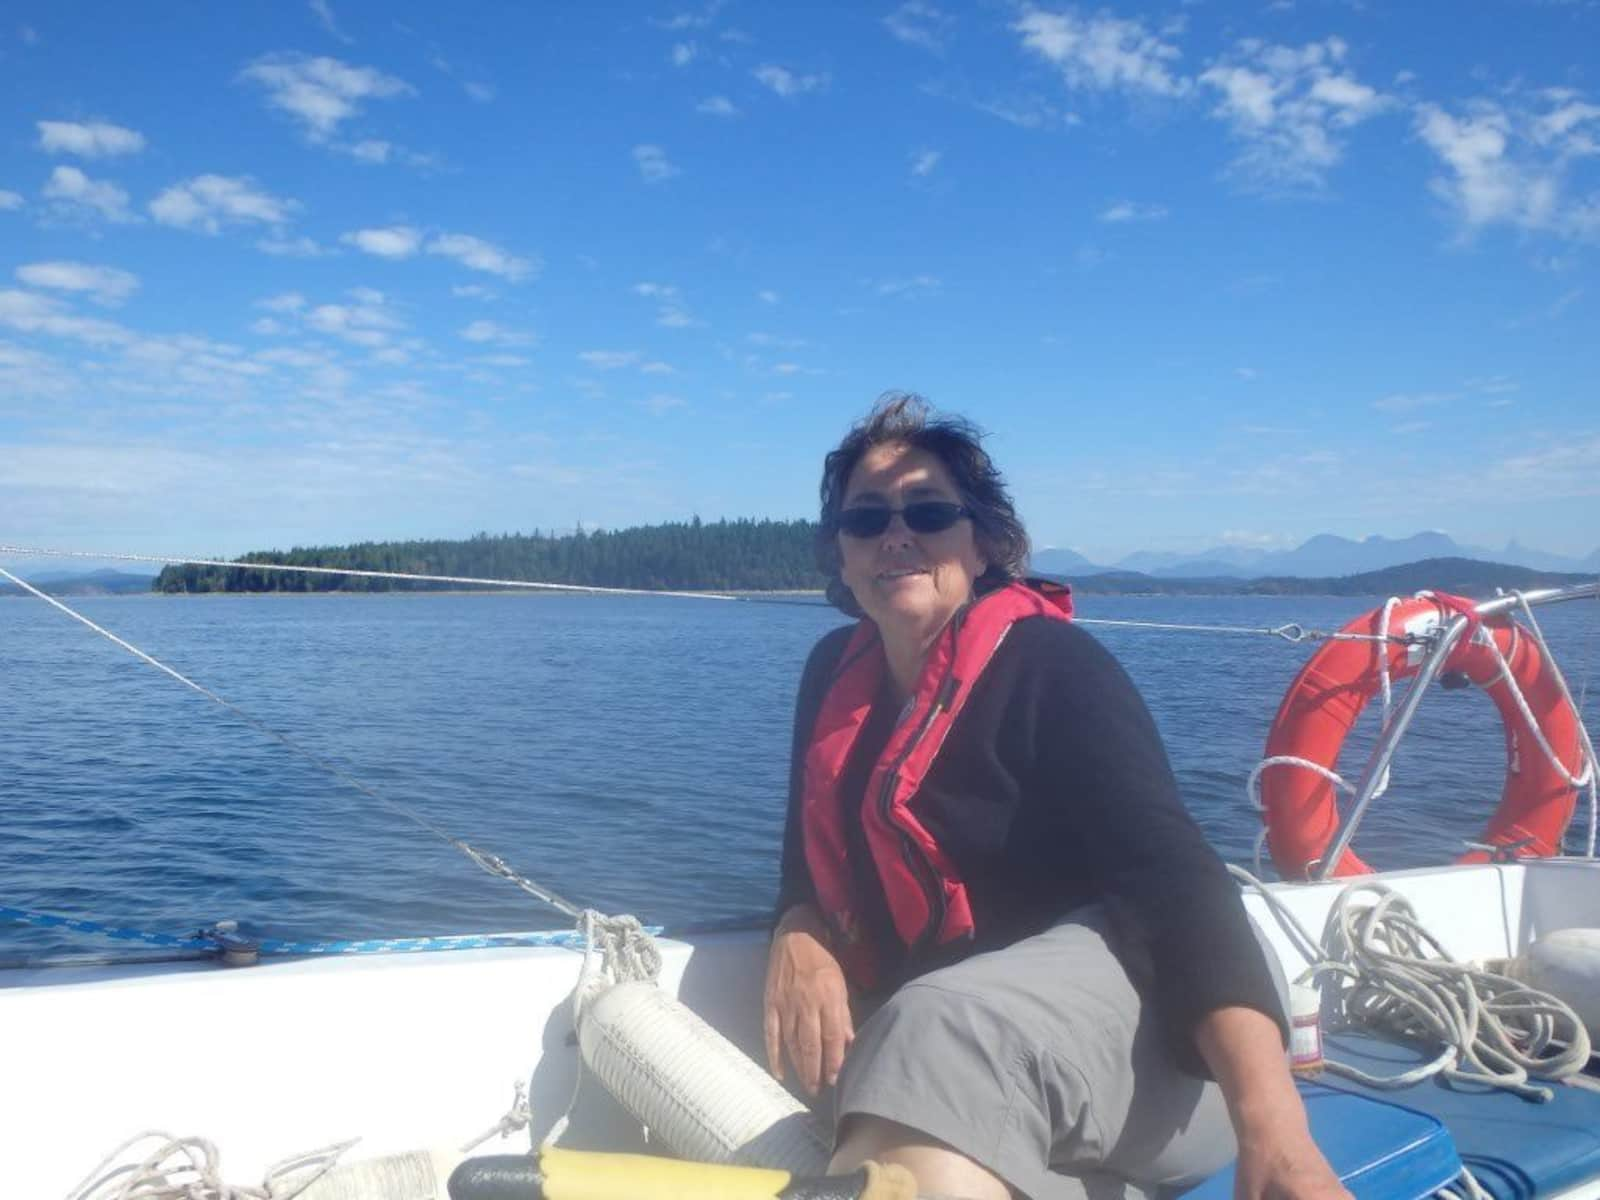 Eileen from Comox, British Columbia, Canada